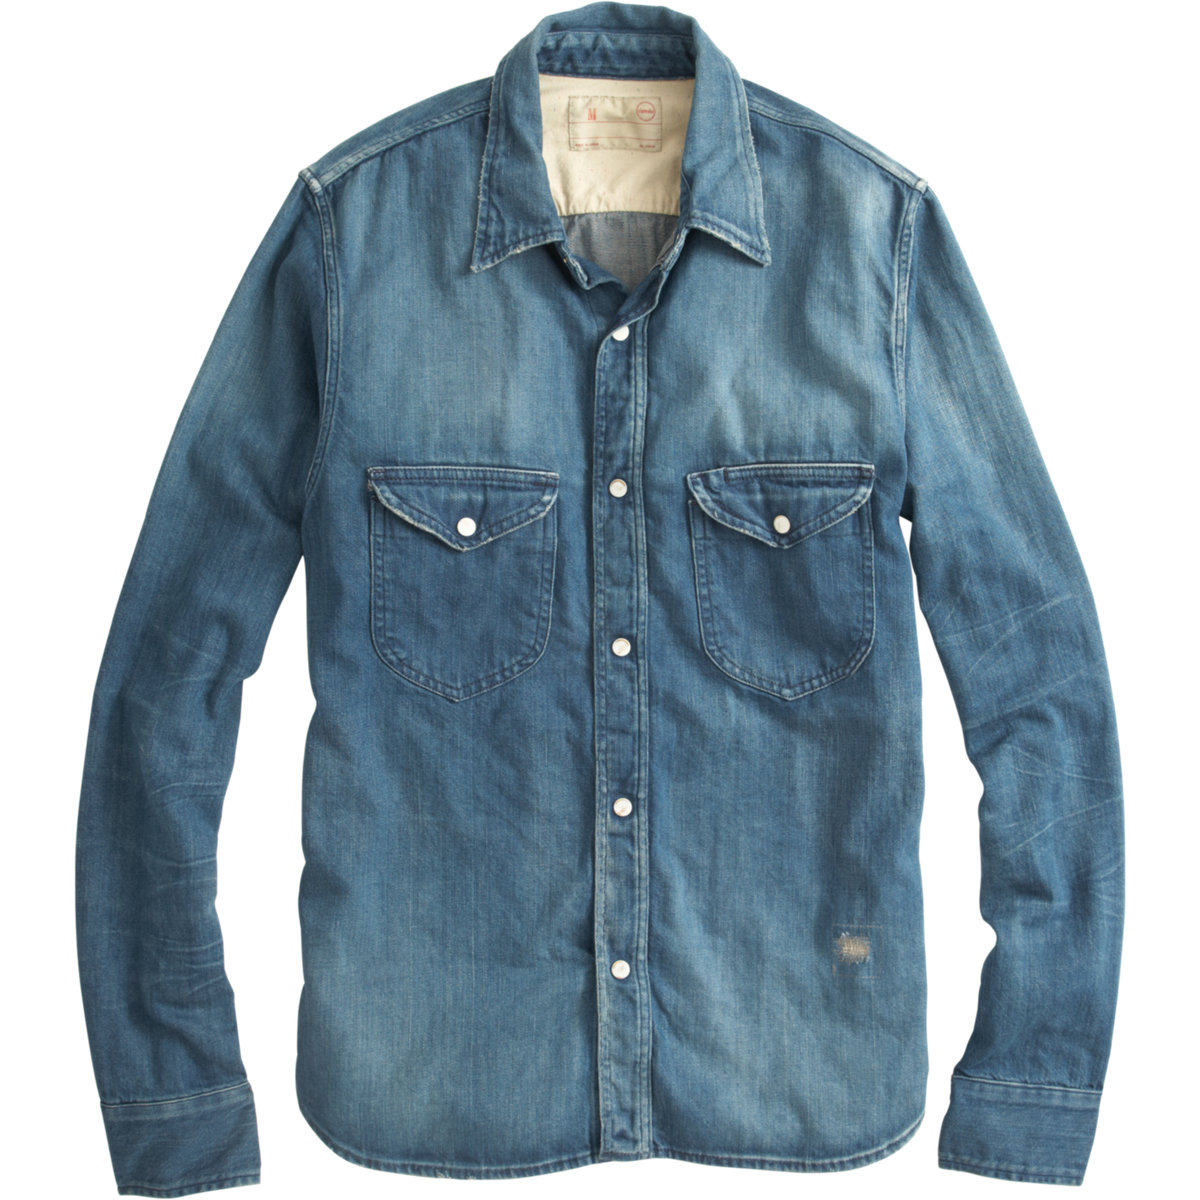 Chimala denim snap button shirt in blue for men lyst for Mens shirts with snaps instead of buttons